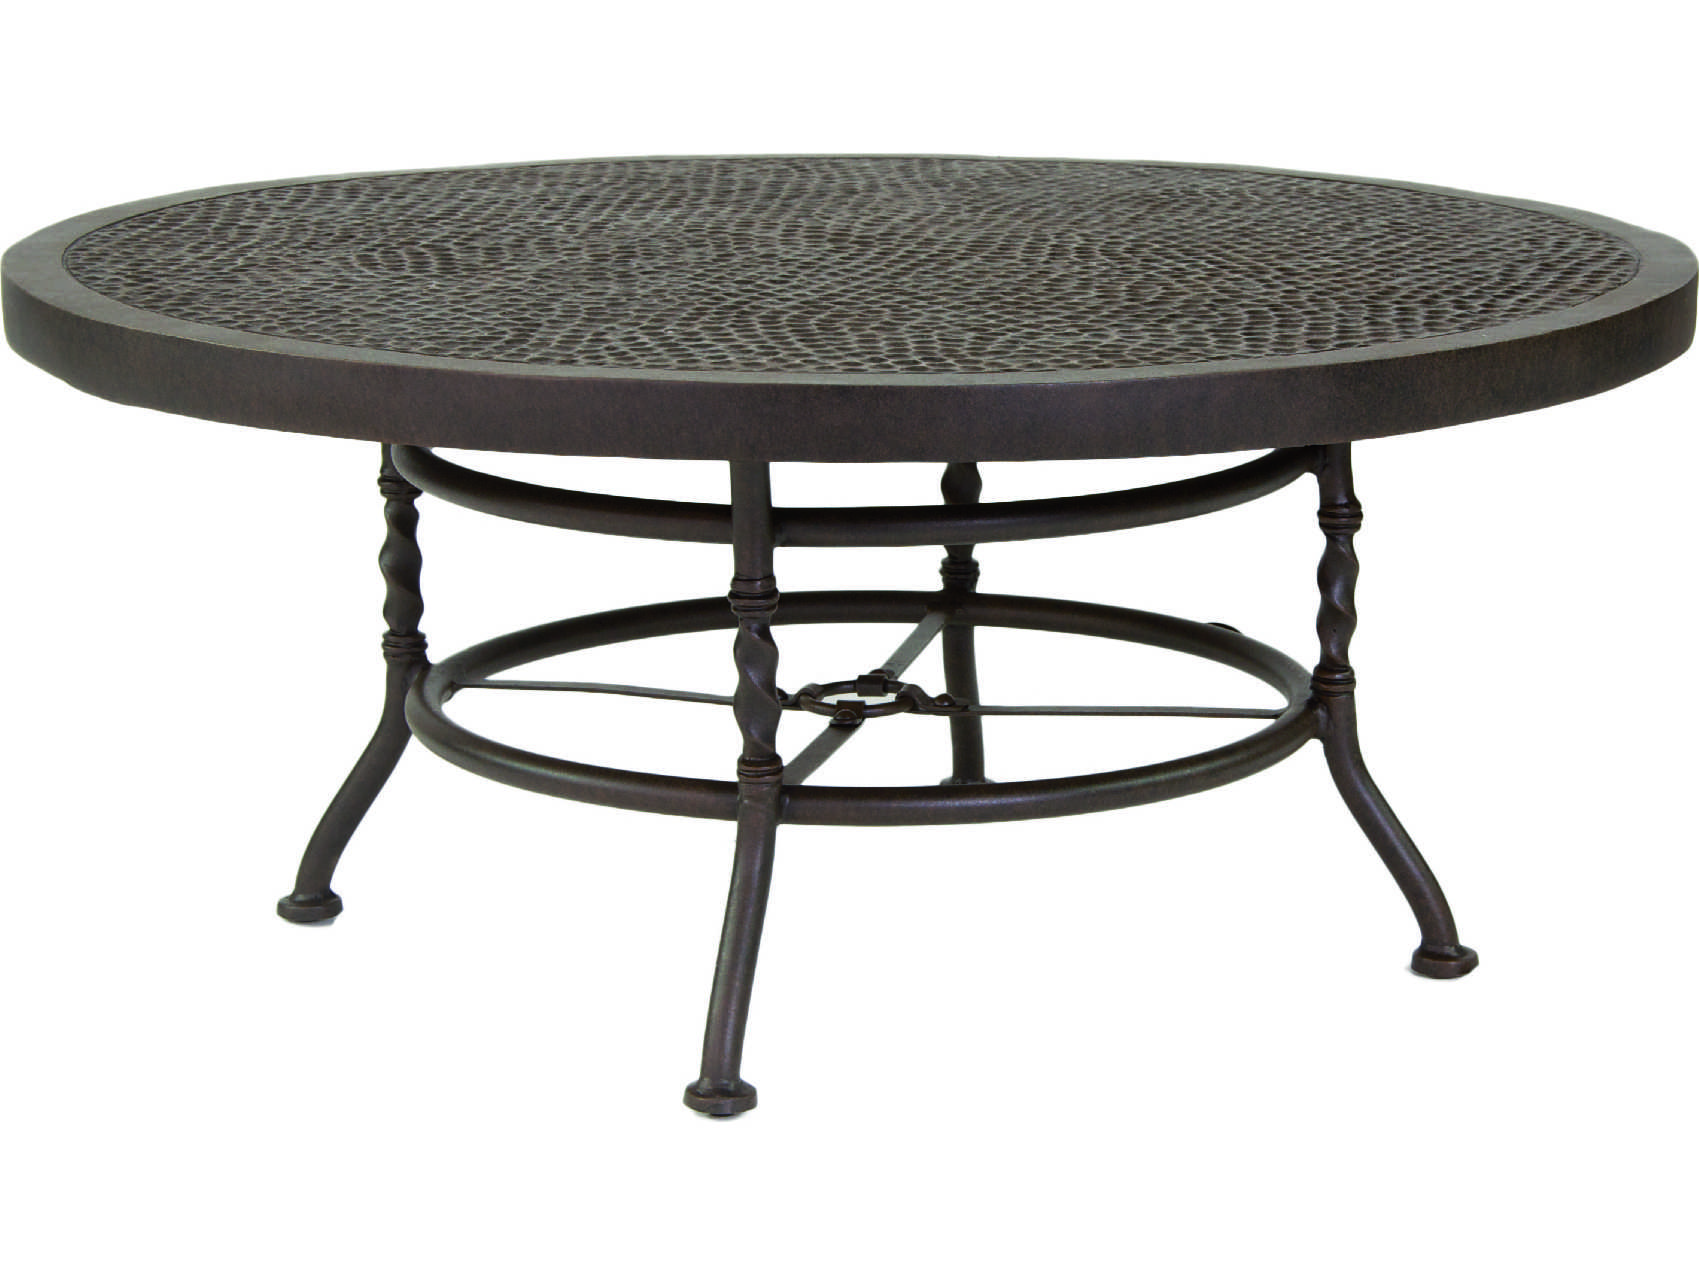 Castelle Veranda Cast Aluminum 42 44 Round Coffee Table Zcc42